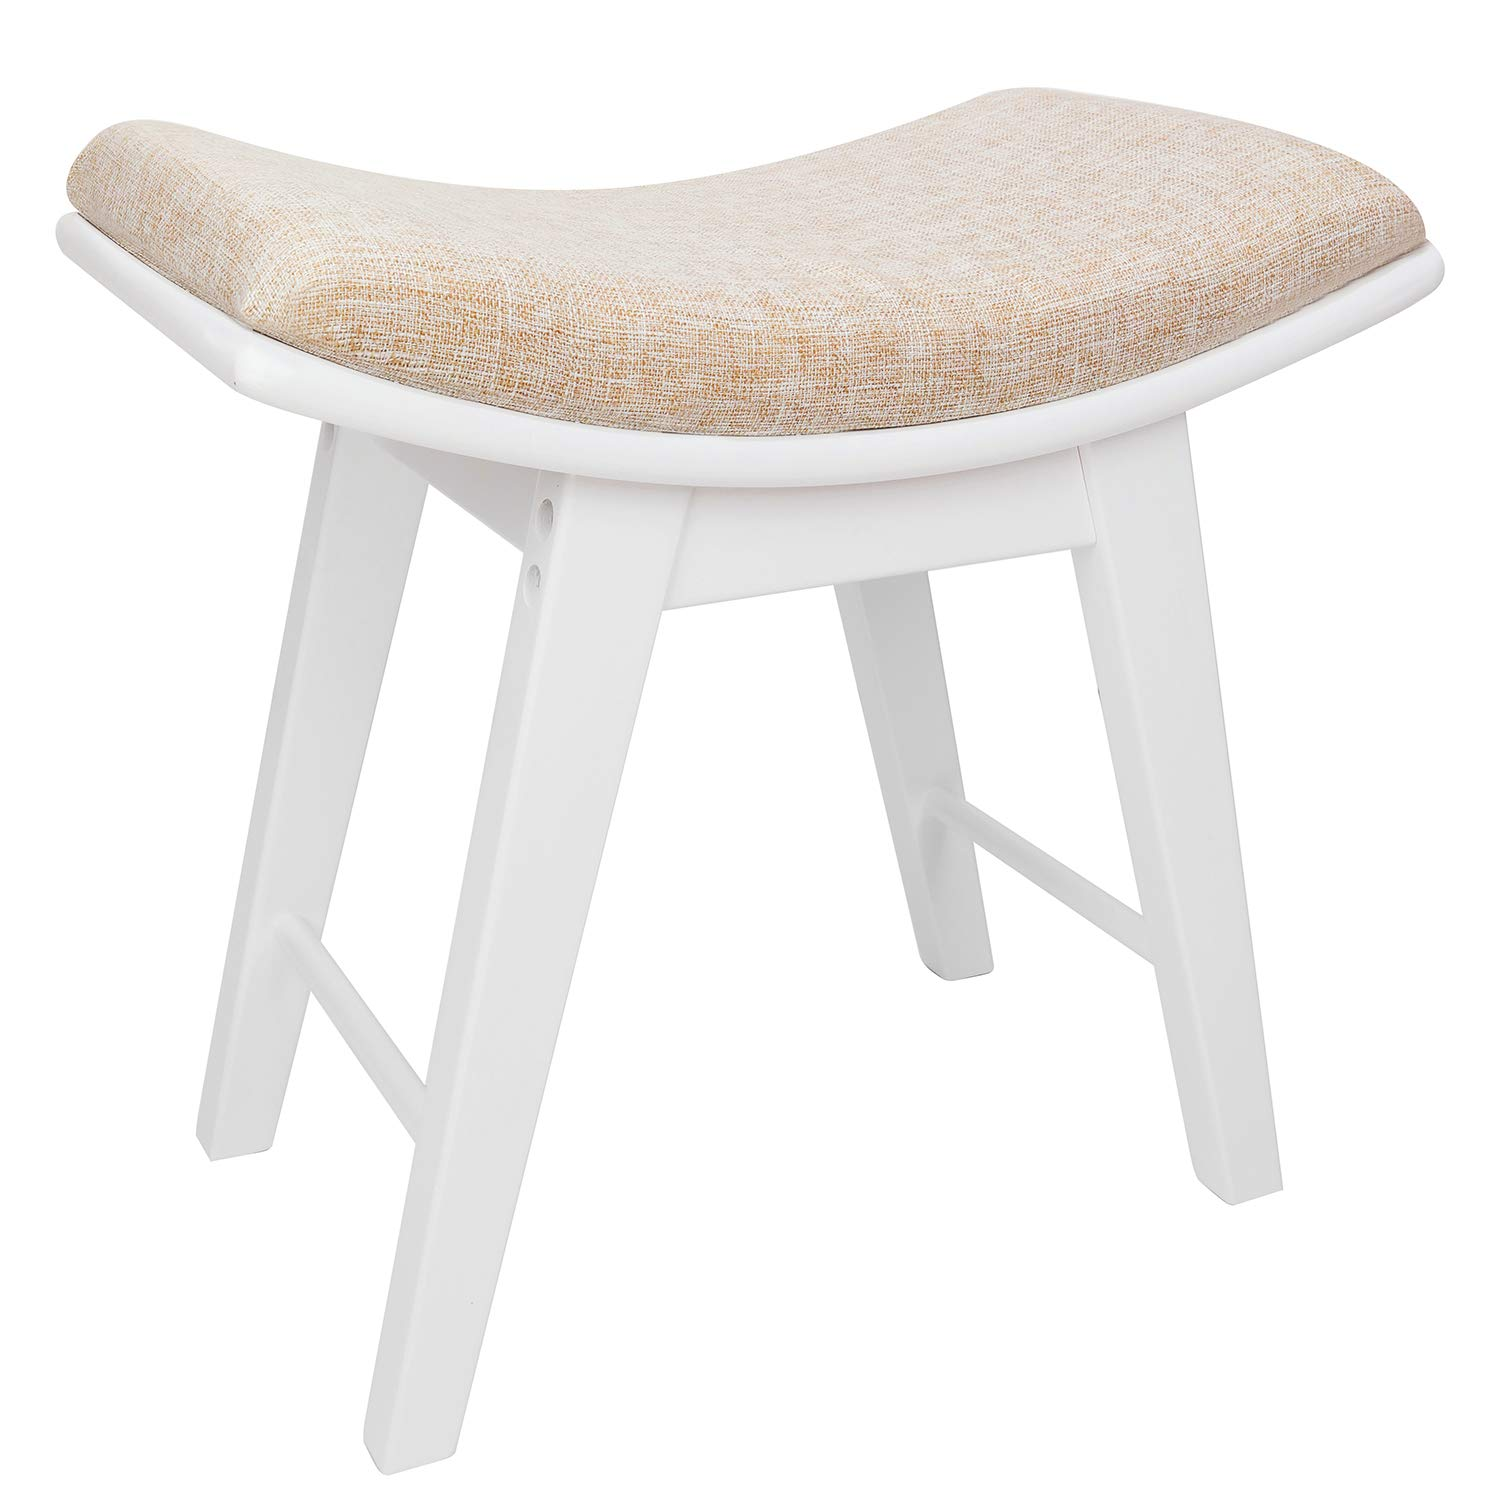 Vanity Stool Modern Concave Seat Surface Makeup Dressing Stool Padded Bench with Rubberwood Legs, Capacity 300 lb, Easy Assembly, White